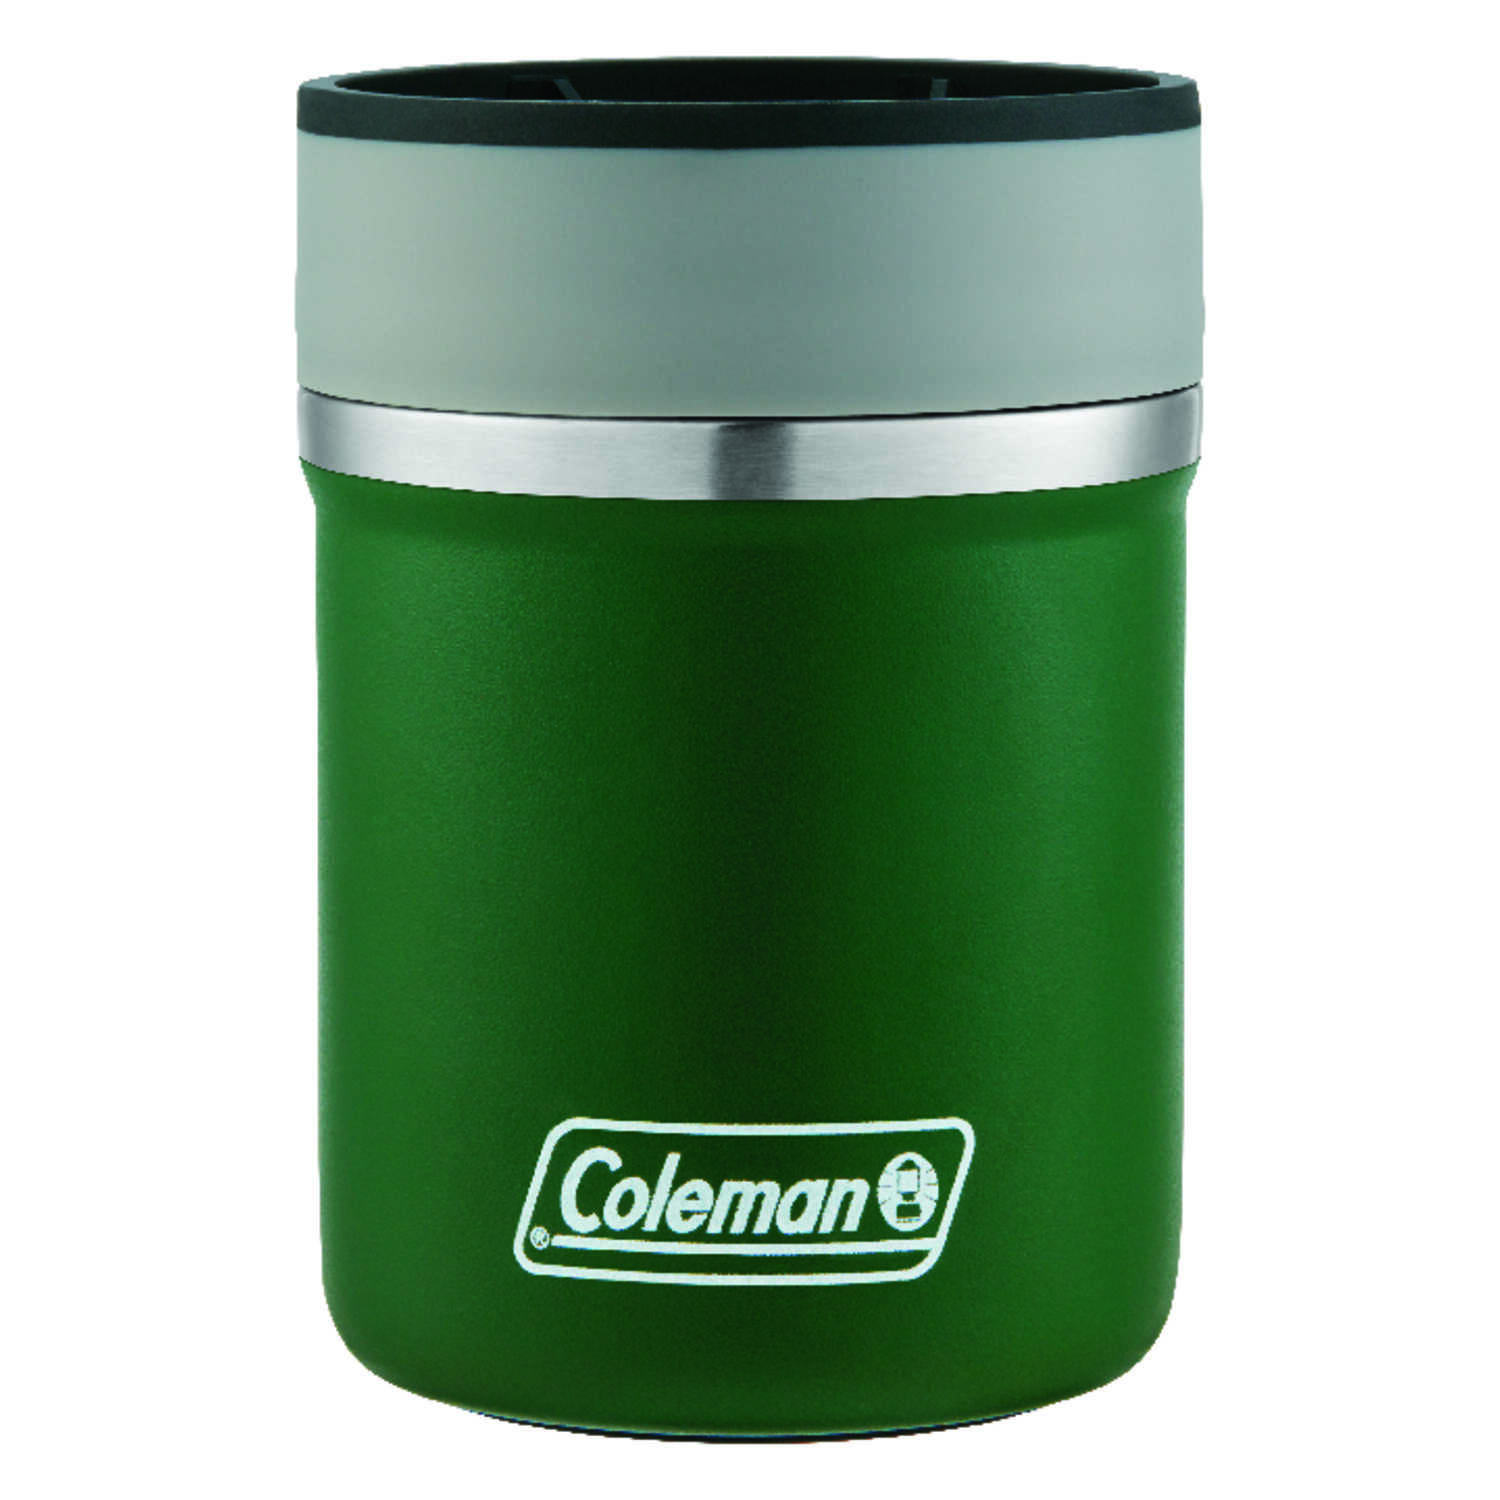 Coleman  Lounger  Heritage Green  Stainless Steel  Insulated  Beverage Coozie  BPA Free